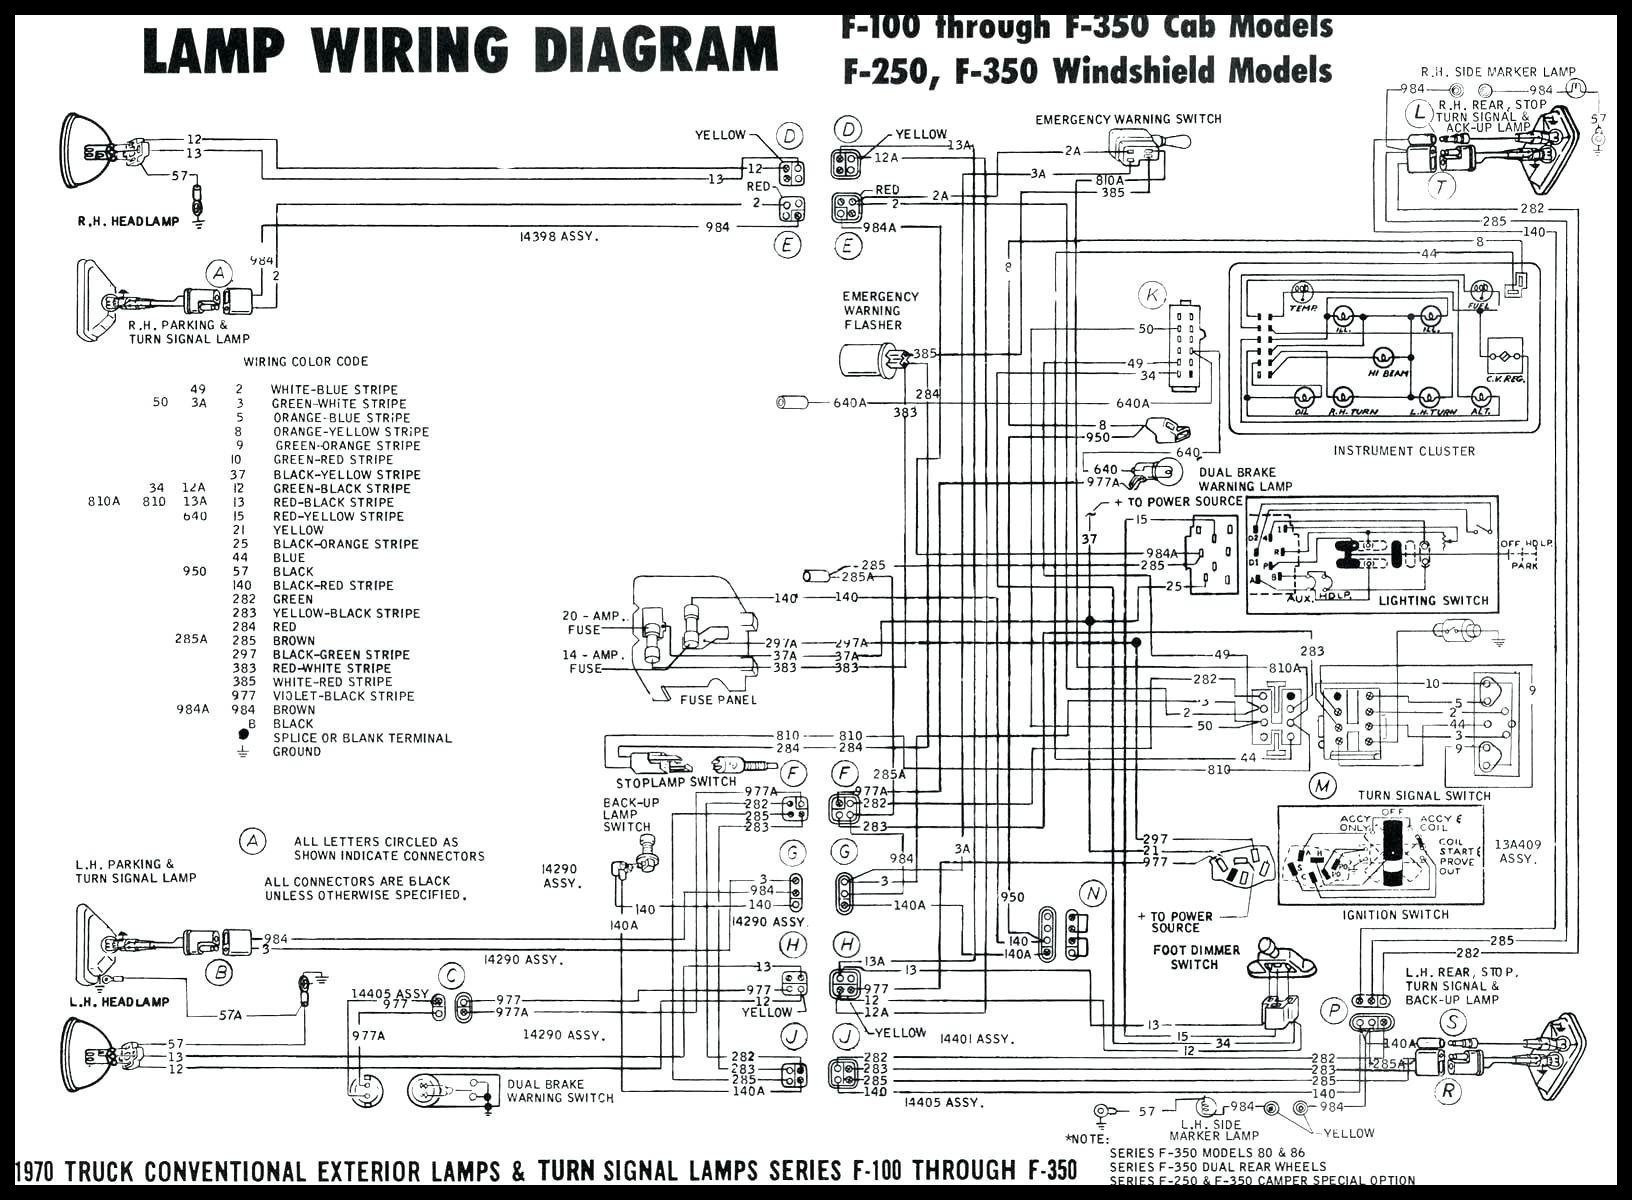 1999 Toyota Camry Headlight Wiring Diagram Electrical Circuit 1995 Dodge Ram 1500 Radio Wiring Diagram New